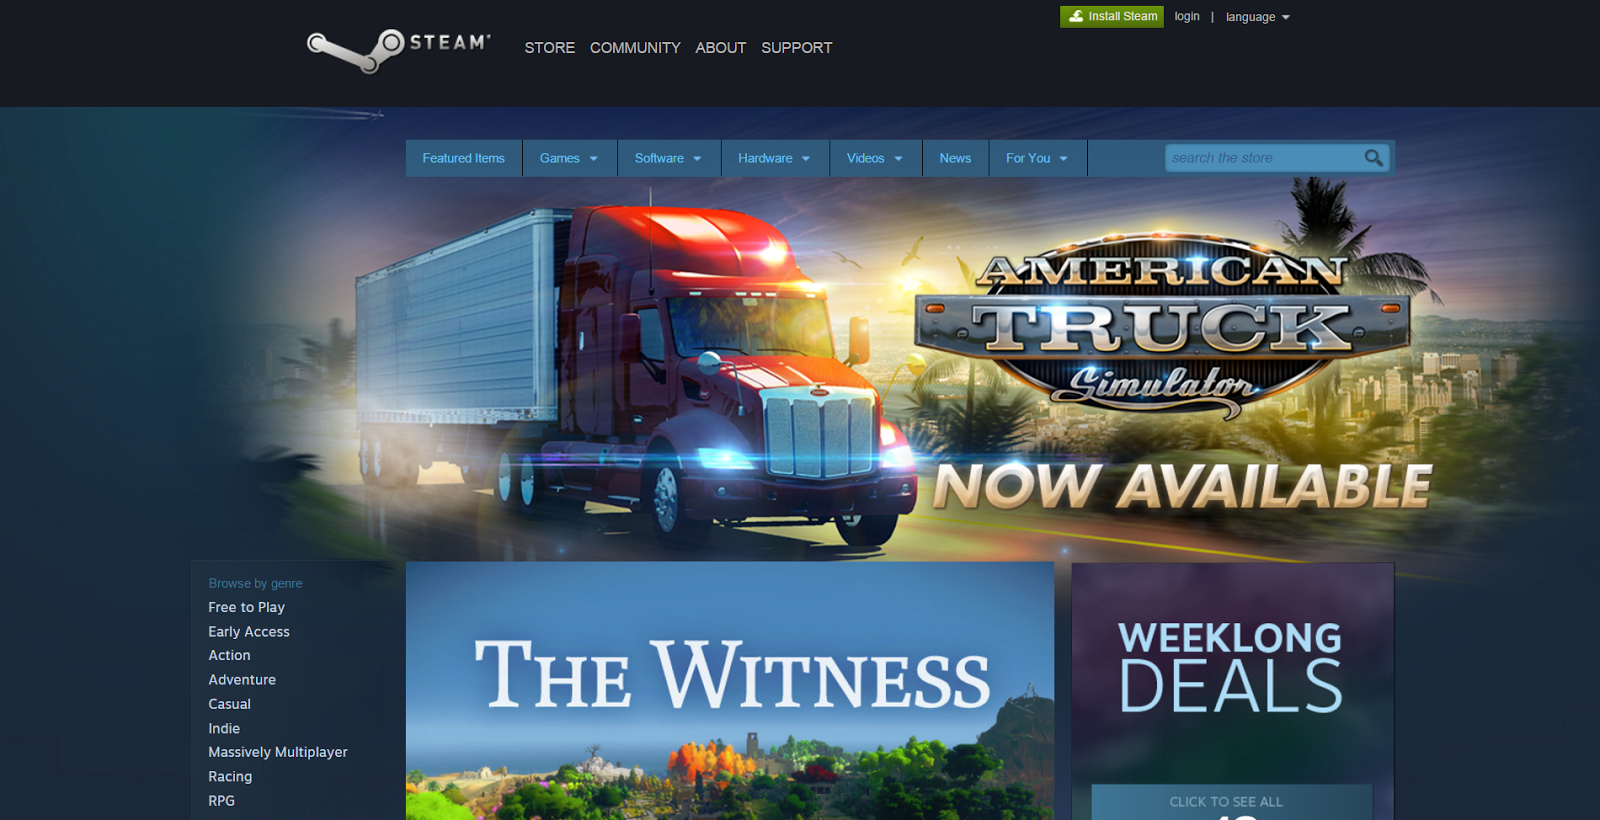 American Truck Simulator is released on Steam!